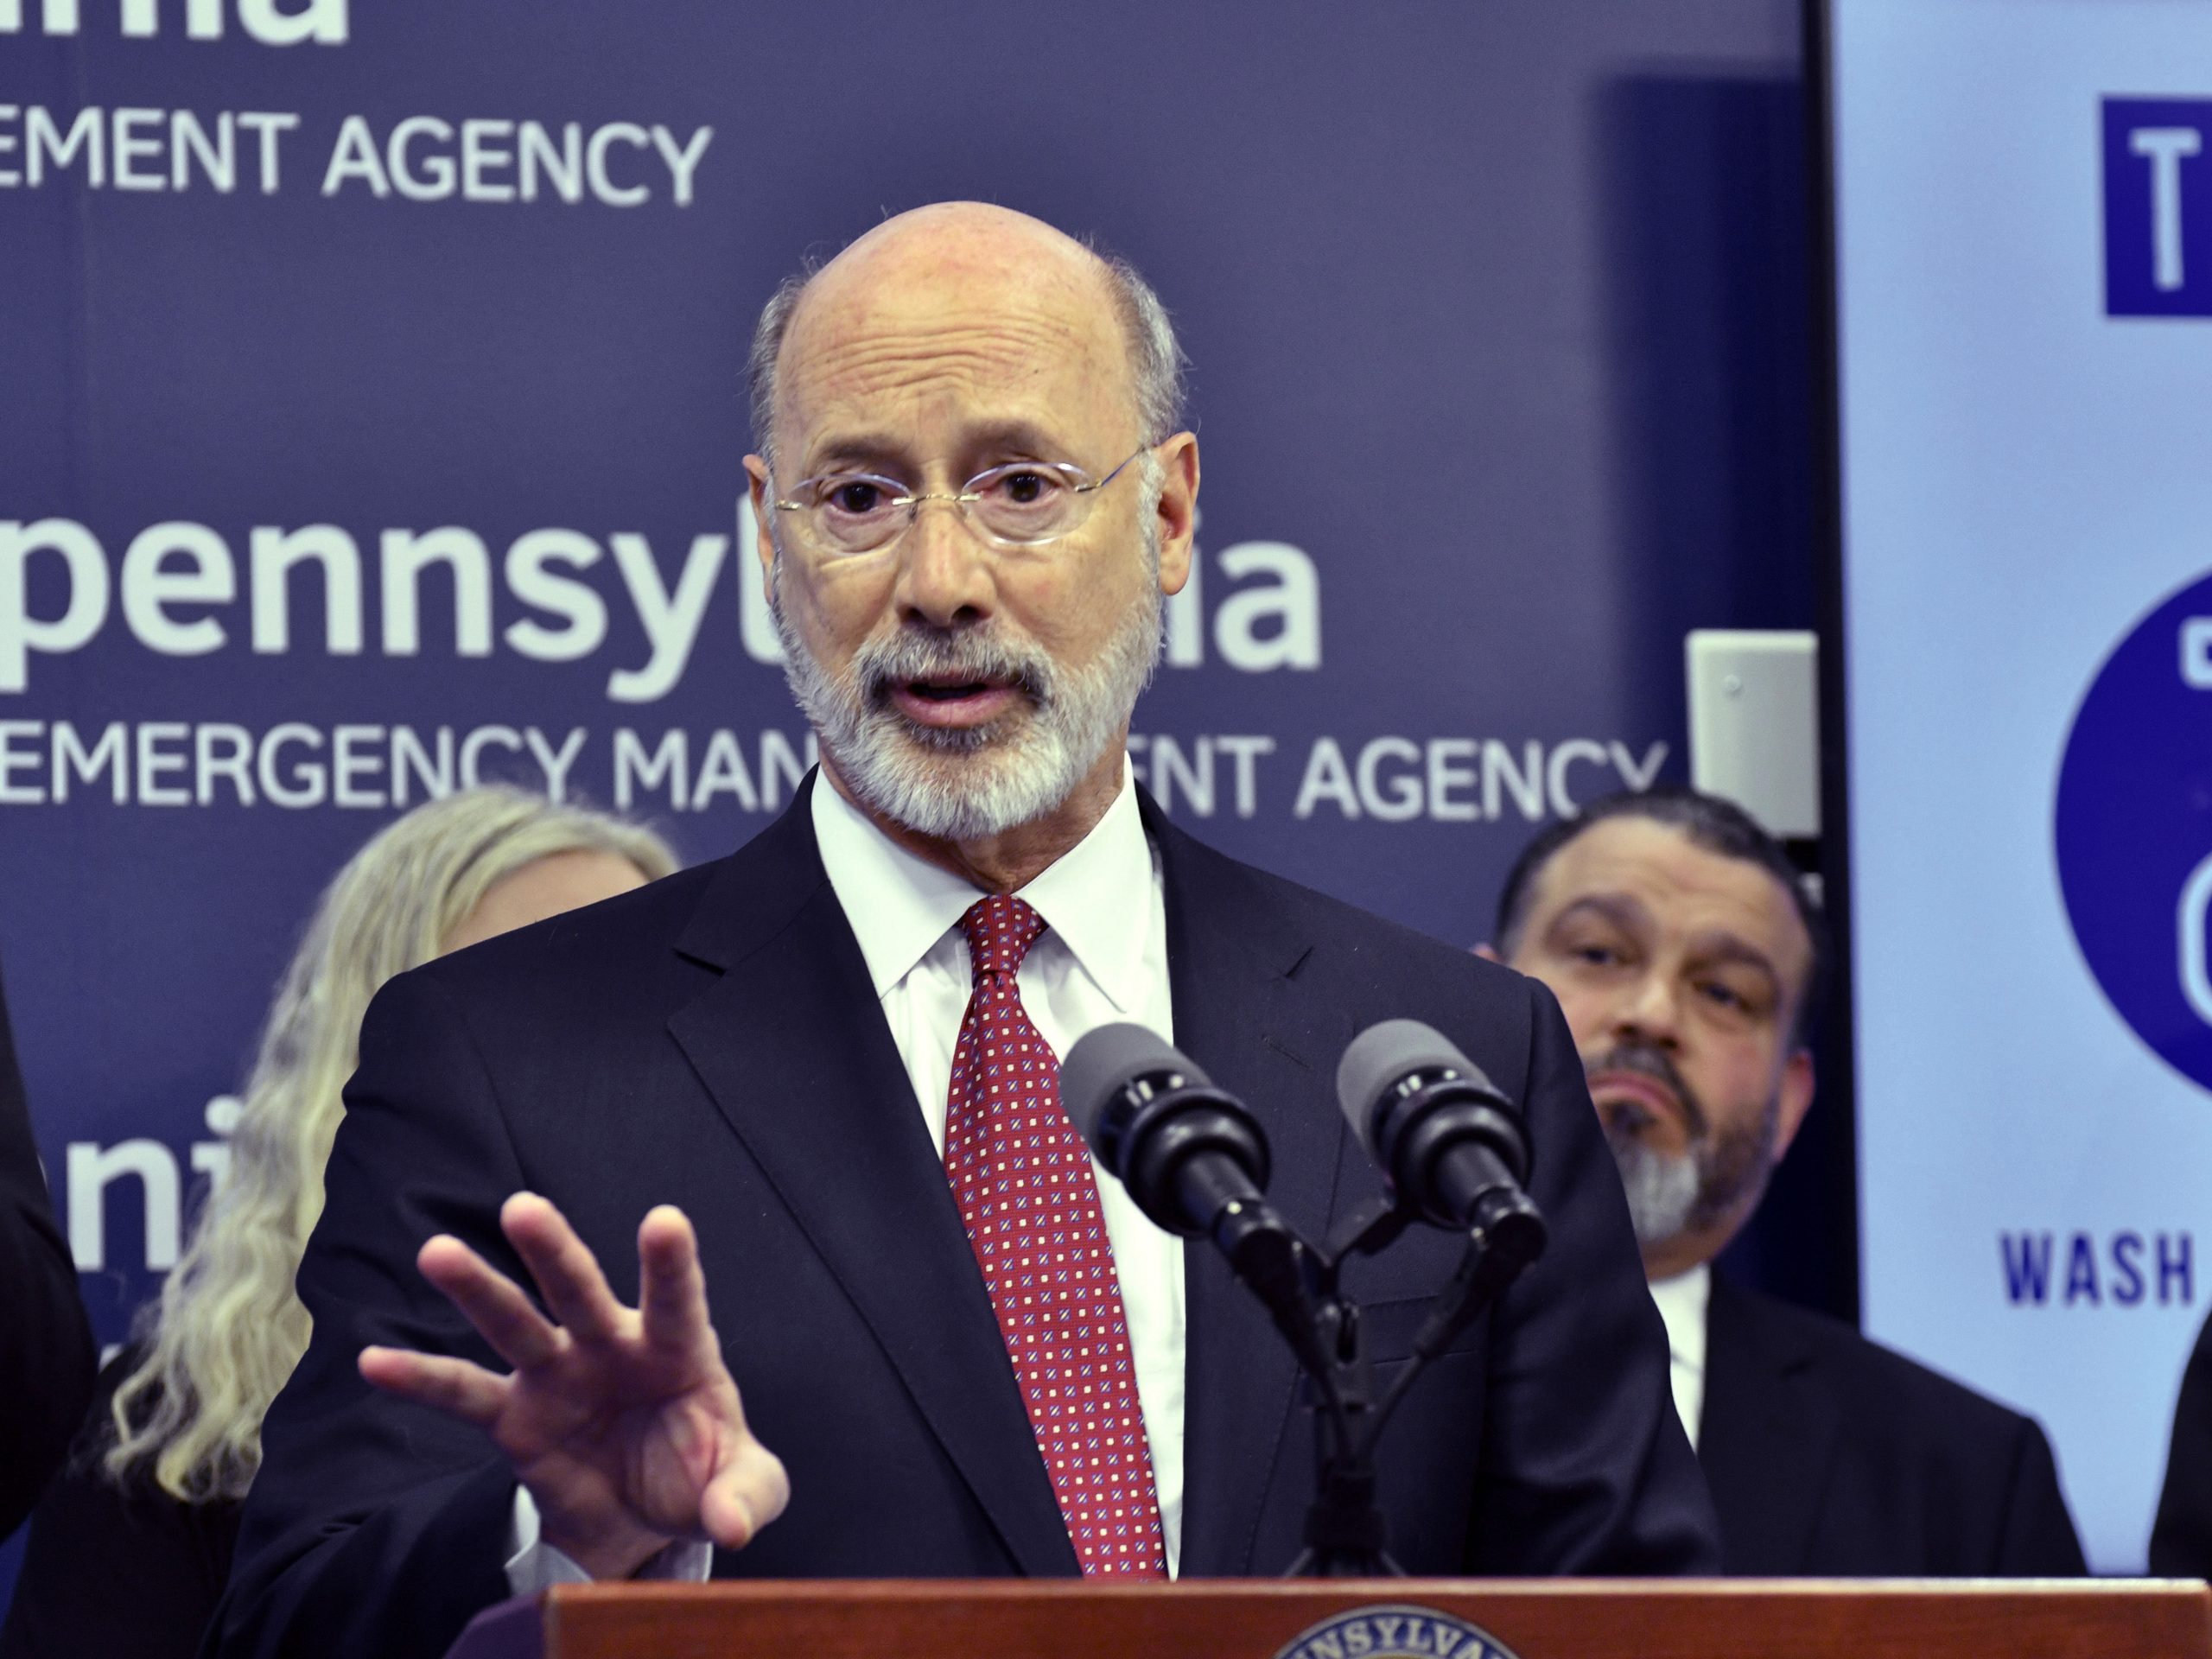 Pennsylvania Gov. Tom Wolf, pictured at a news conference in March, criticized Republicans on Tuesday for celebrating a federal judge's ruling that called some of the state's pandemic response measures unconstitutional.